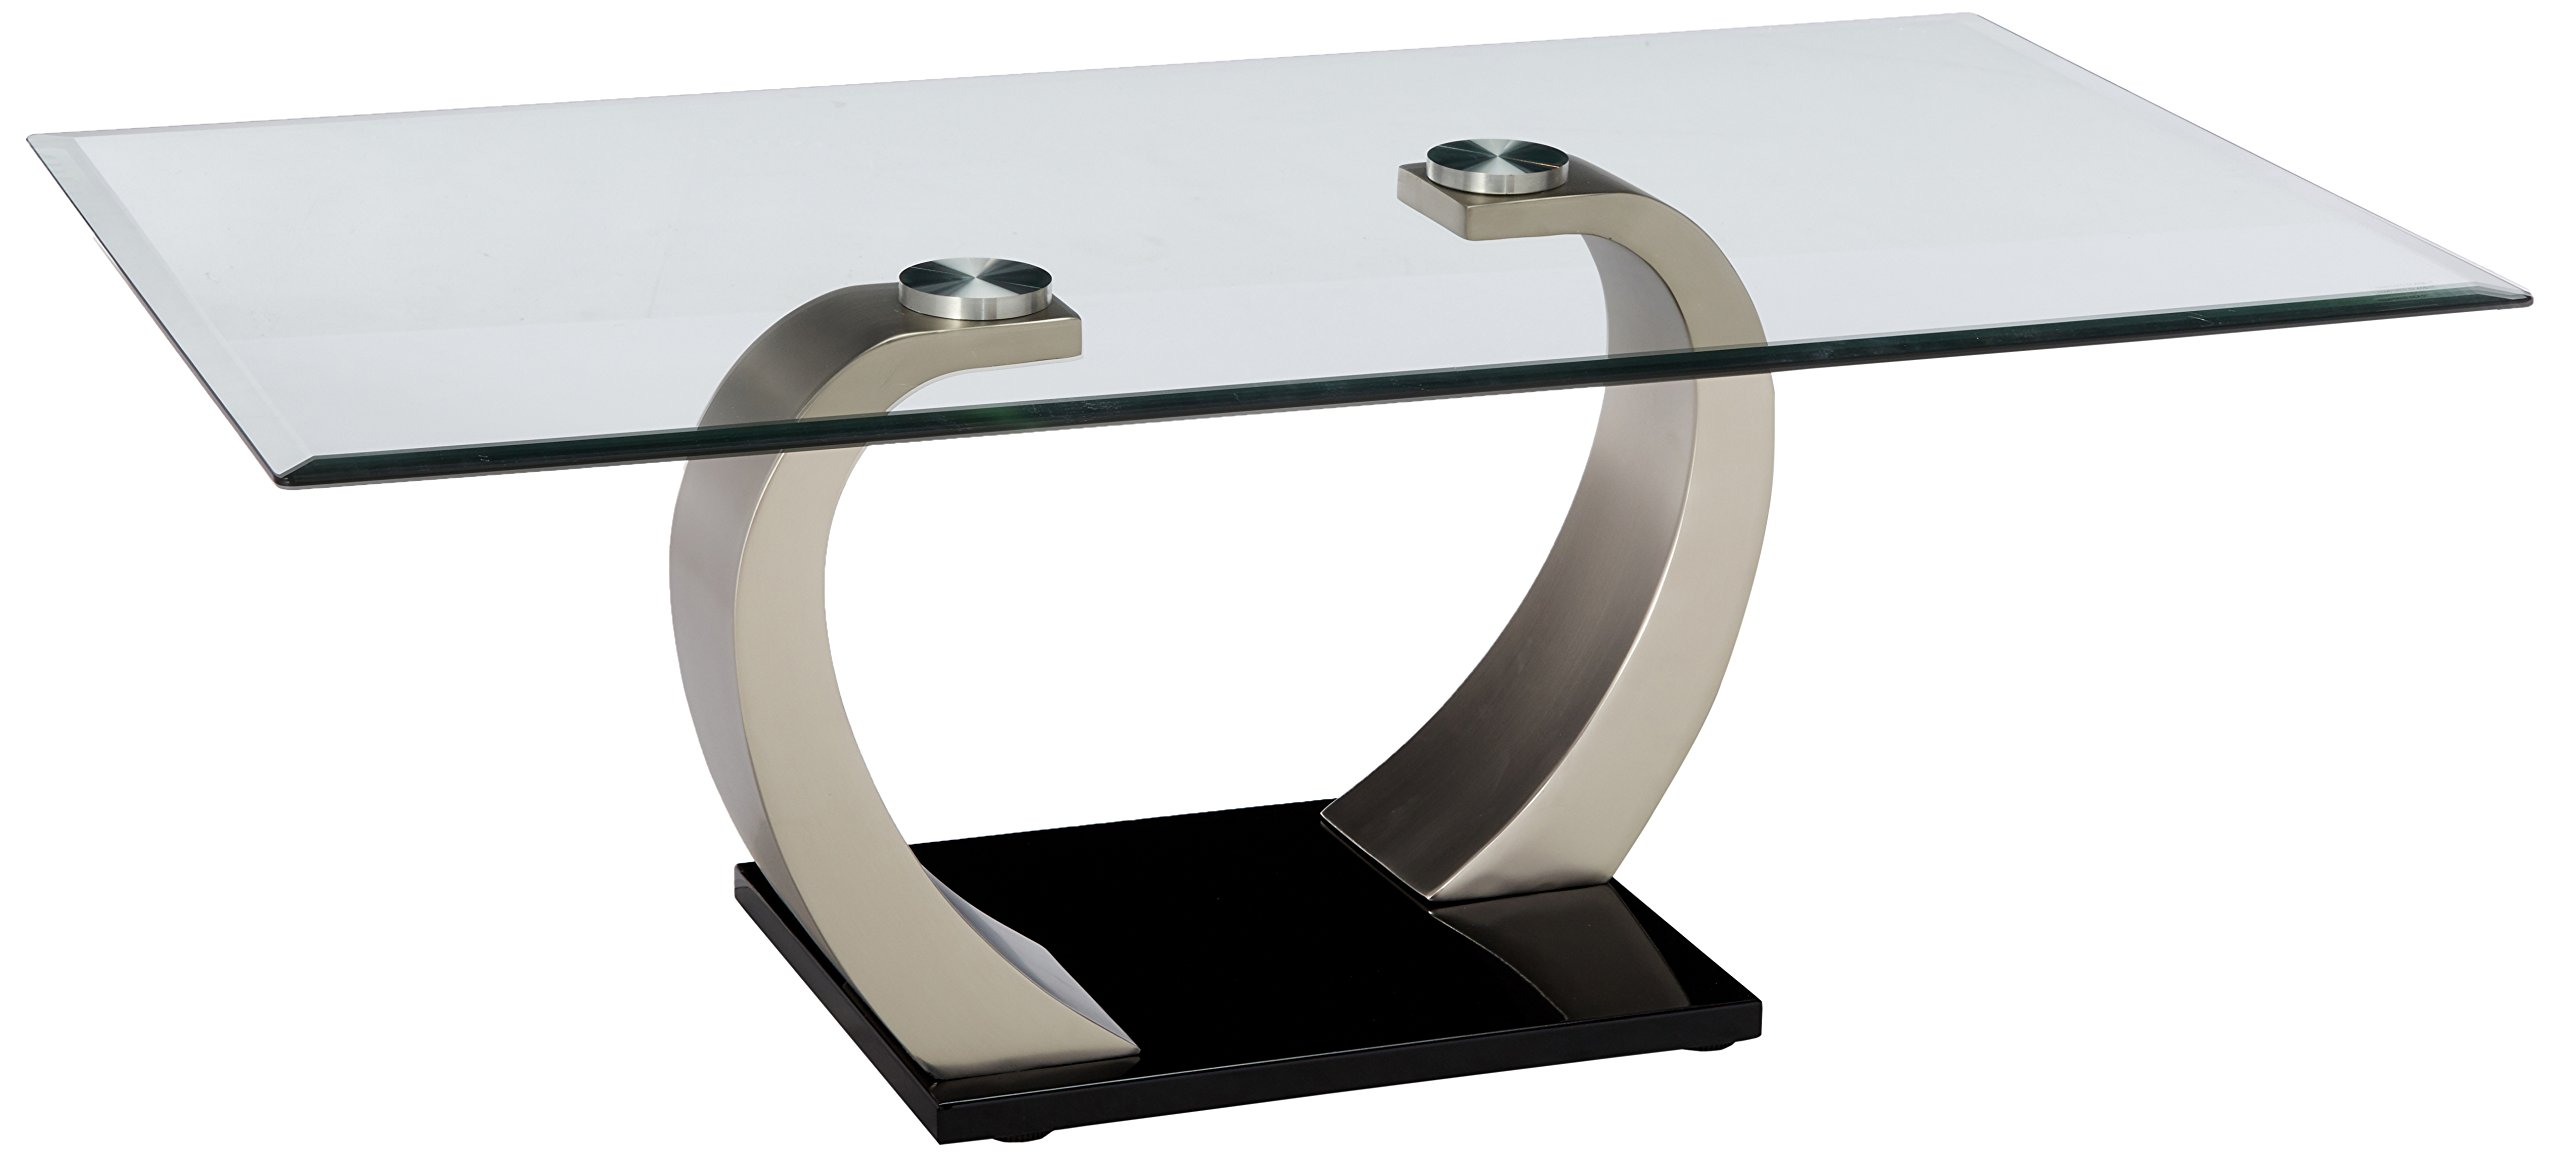 Shearwater Rectangular Coffee Table Silver and Clear by Coaster Home Furnishings